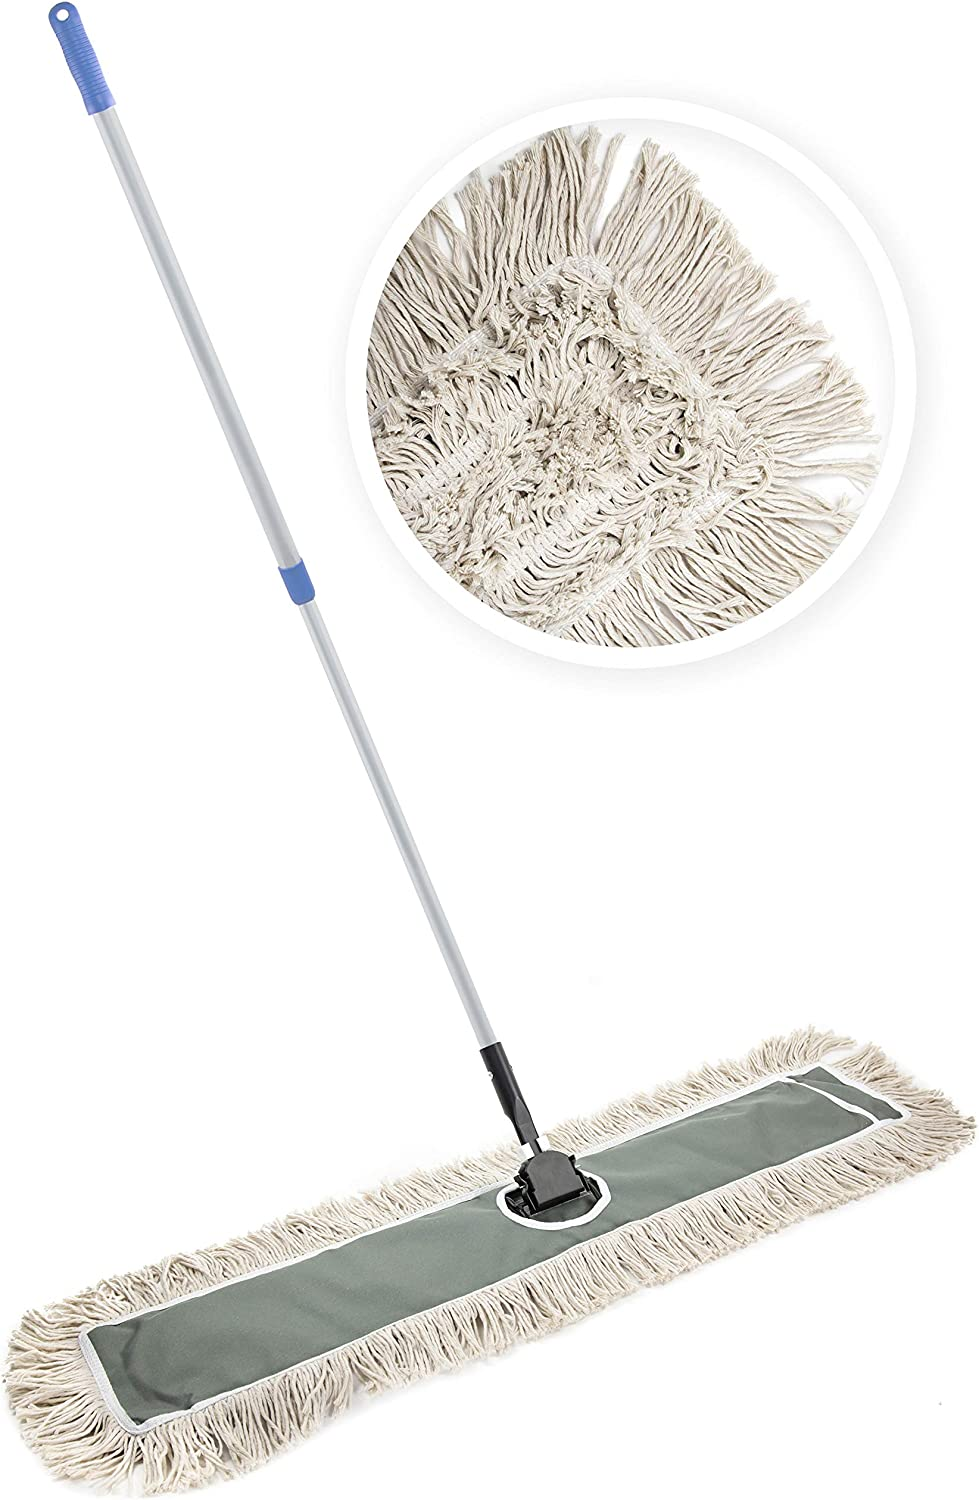 Jinclean 36 Industrial Class Cotton Floor Dust Mop Dry To Attract Dirt Dust Laminated Hardwood Floor Garage Epoxy Tile Bamboo Telescopic Pole Height Max 59 36 Industrial Mop Health Personal Care Amazon Com